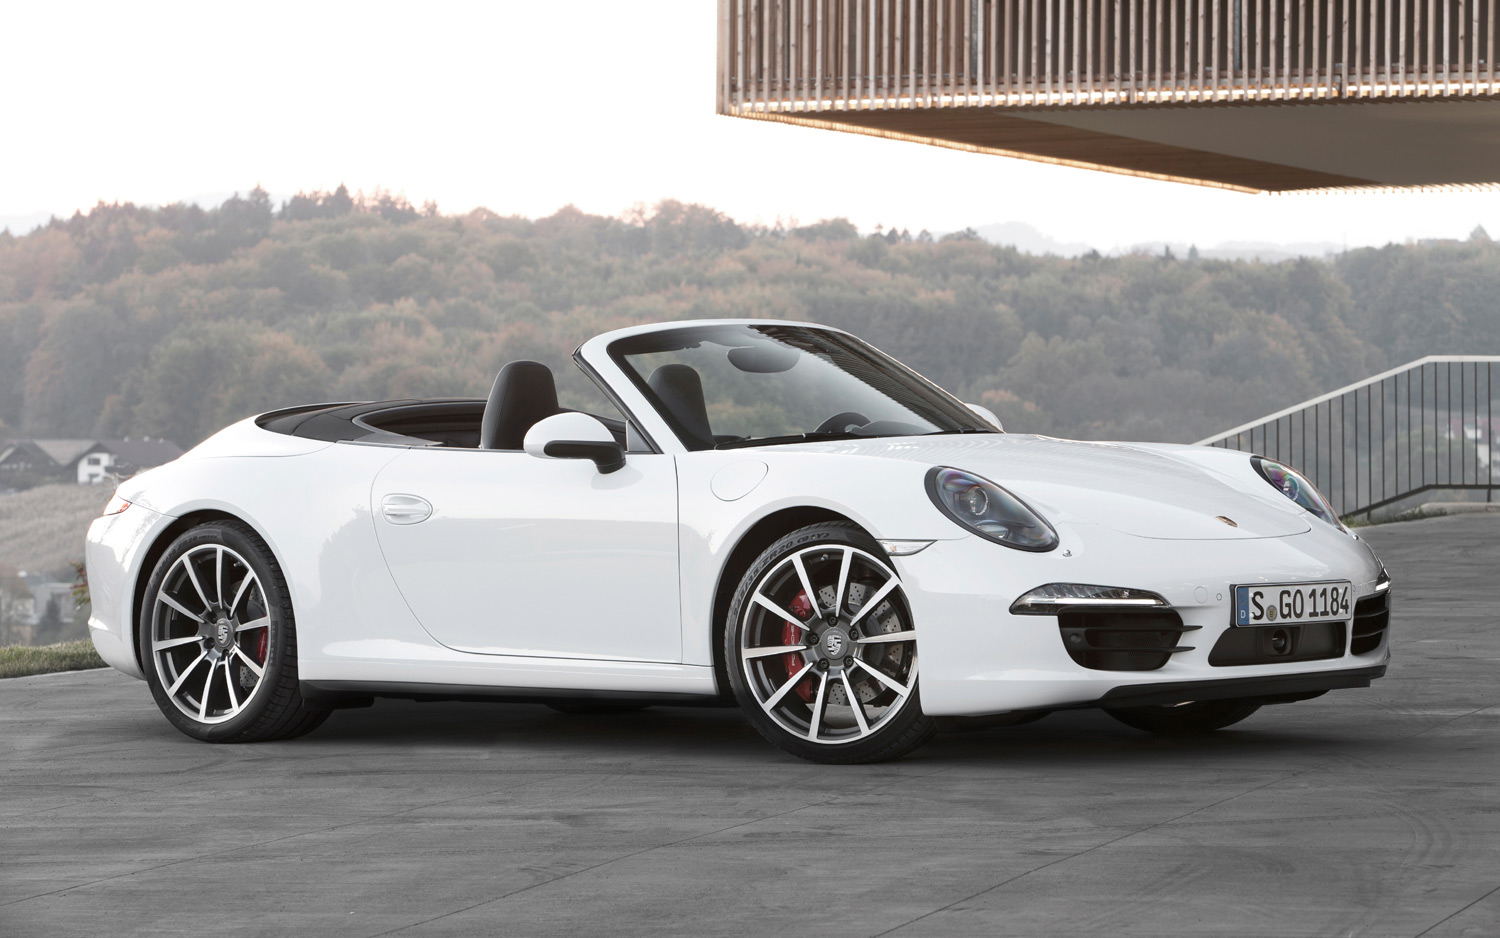 Porsche 911 Carrera 4S Cabriolet photo 10